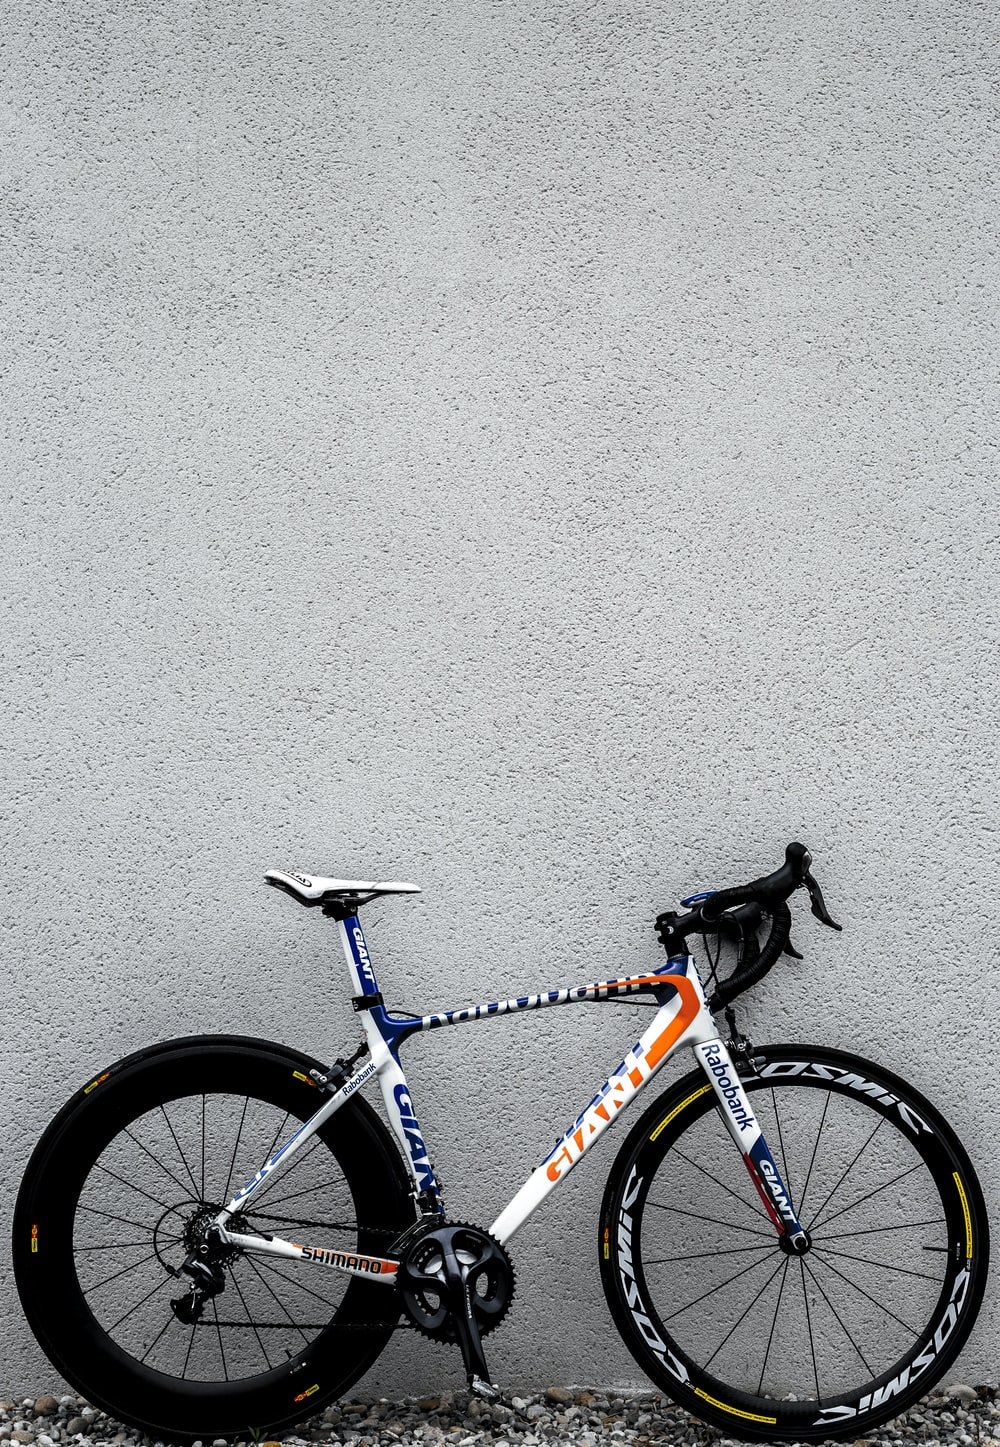 white and black Giant road bike